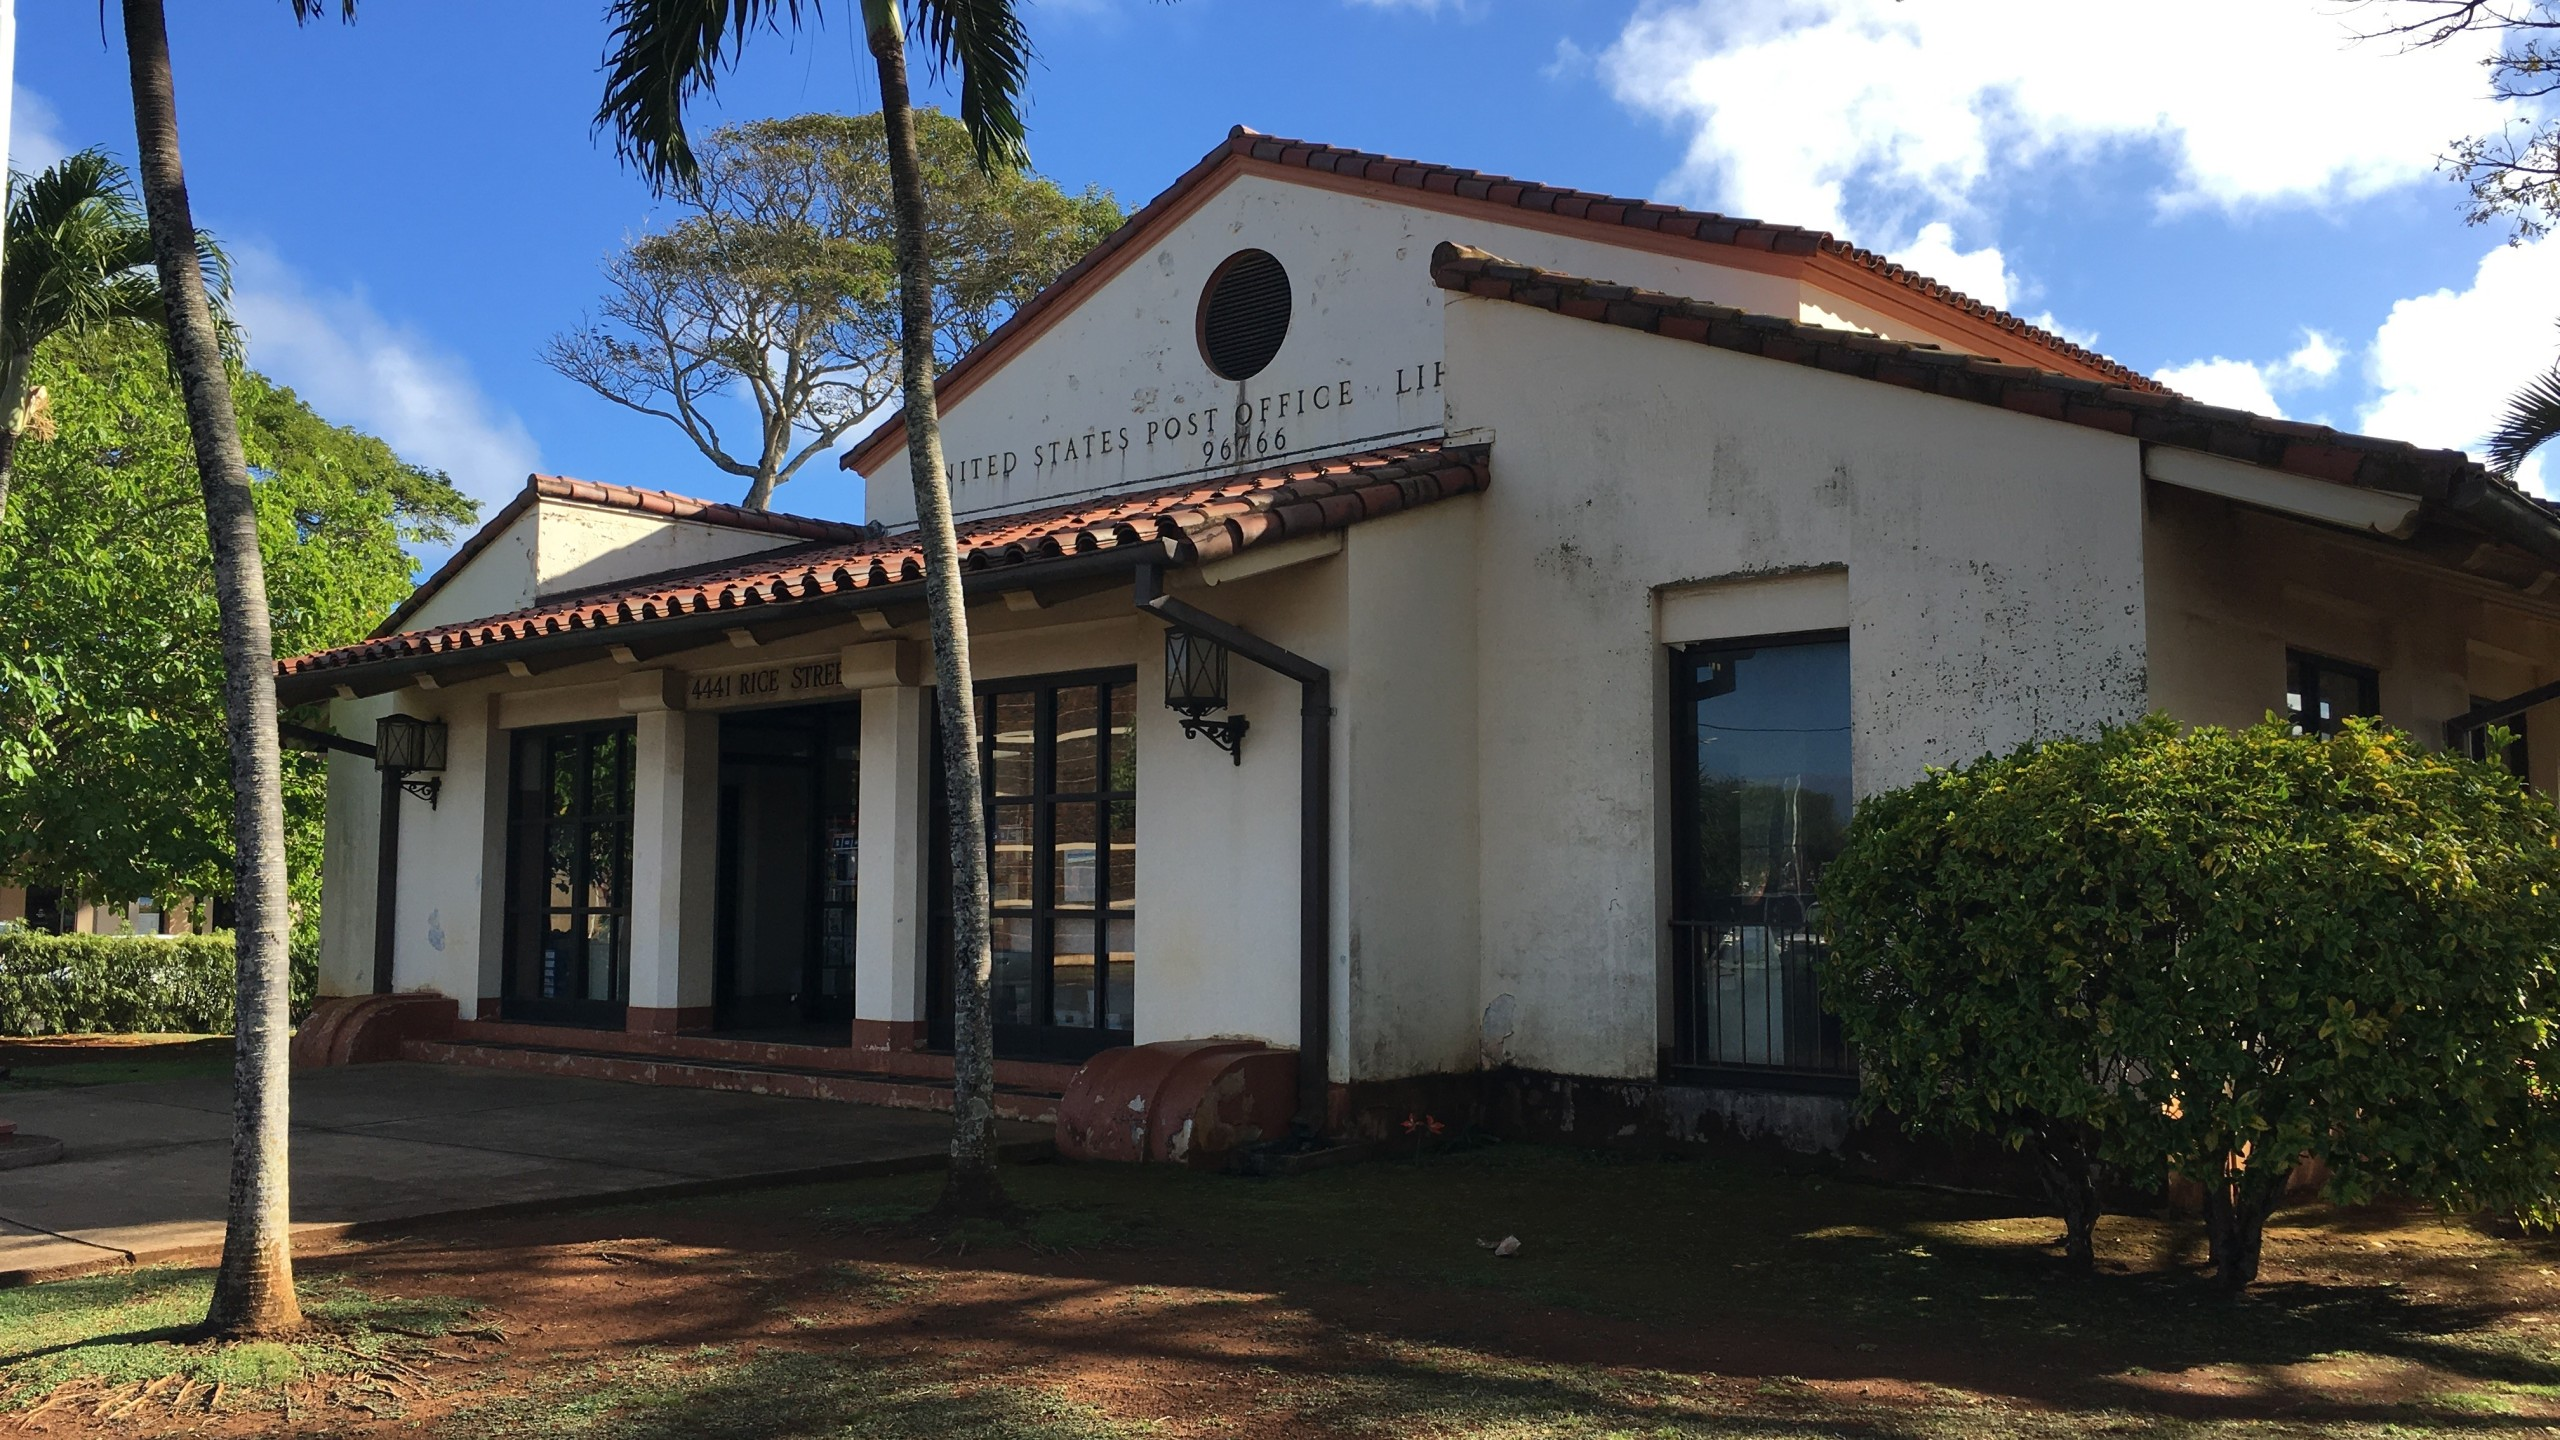 lihue-post-office-cherie-yamamoto_194721